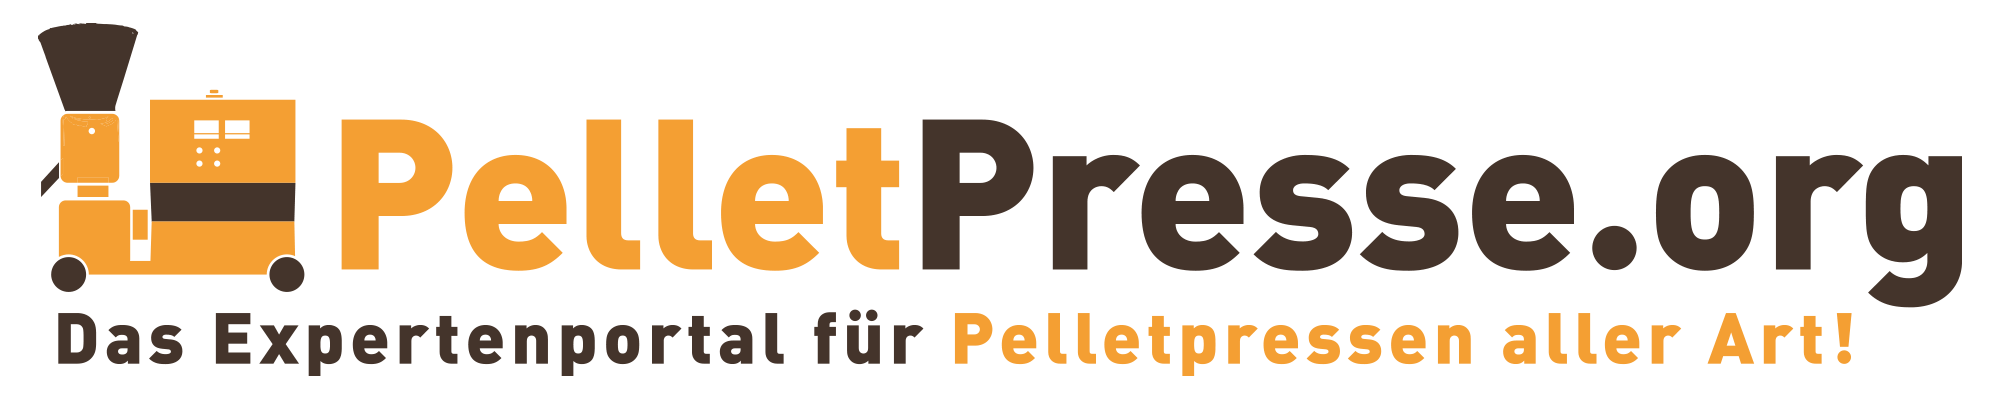 Pelletpresse Logo Transparent